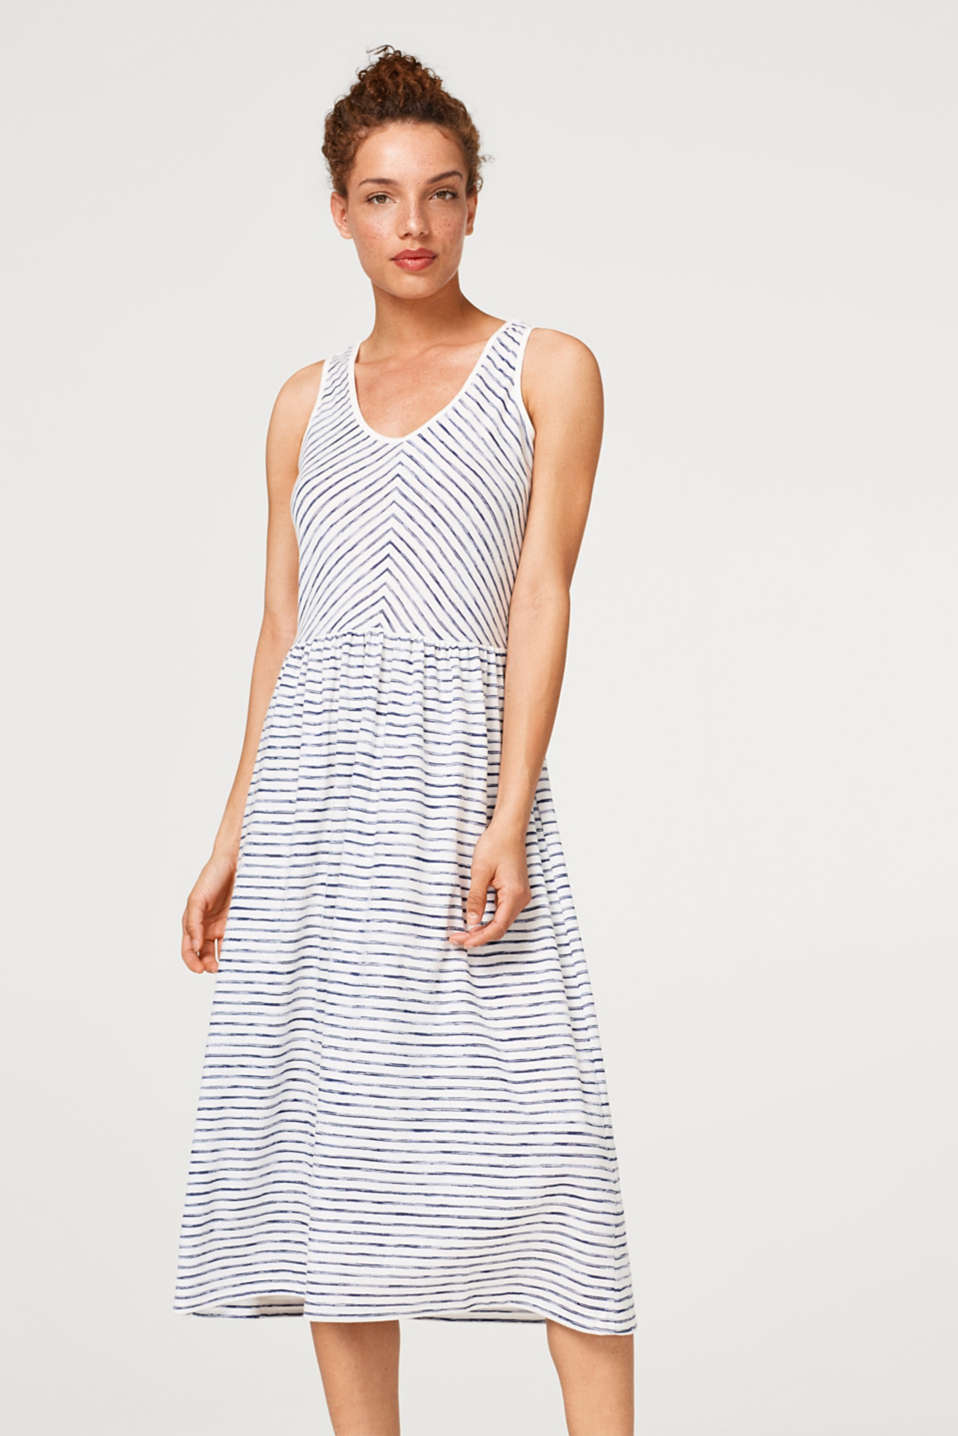 Esprit - Midi dress in striped jersey